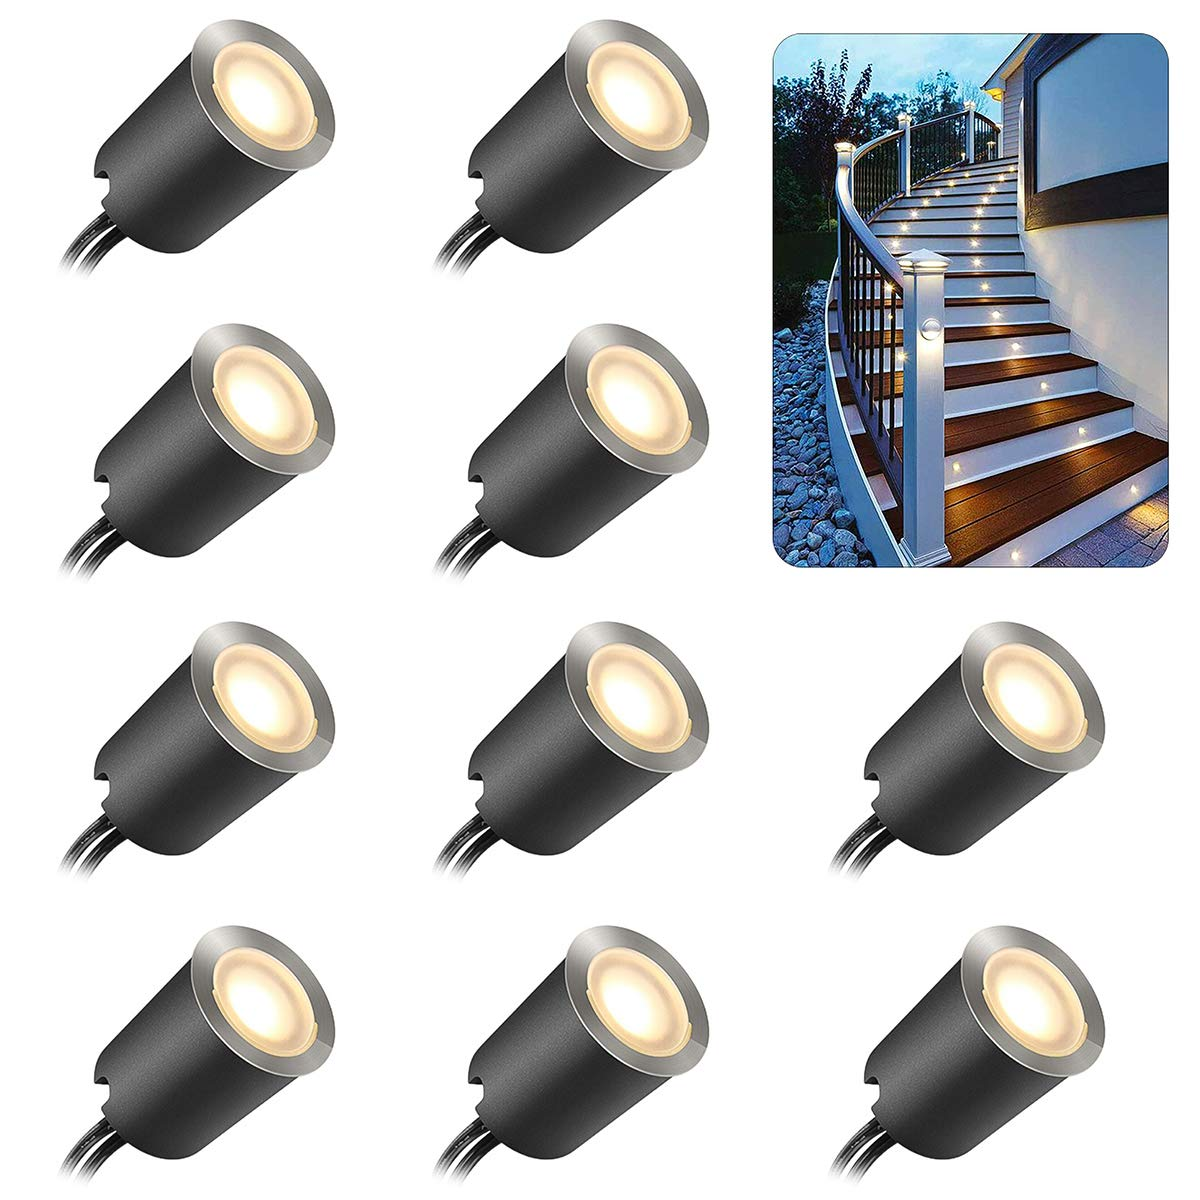 Recessed Led Deck Light Kits With Protecting Shellf32mm 10pack Smy In Ground Outdoor Led Landscape Lighting Ip67 Waterproof 12v Low Voltage For Garden Yard Steps Stair Patio Floor Kitchen Decoration